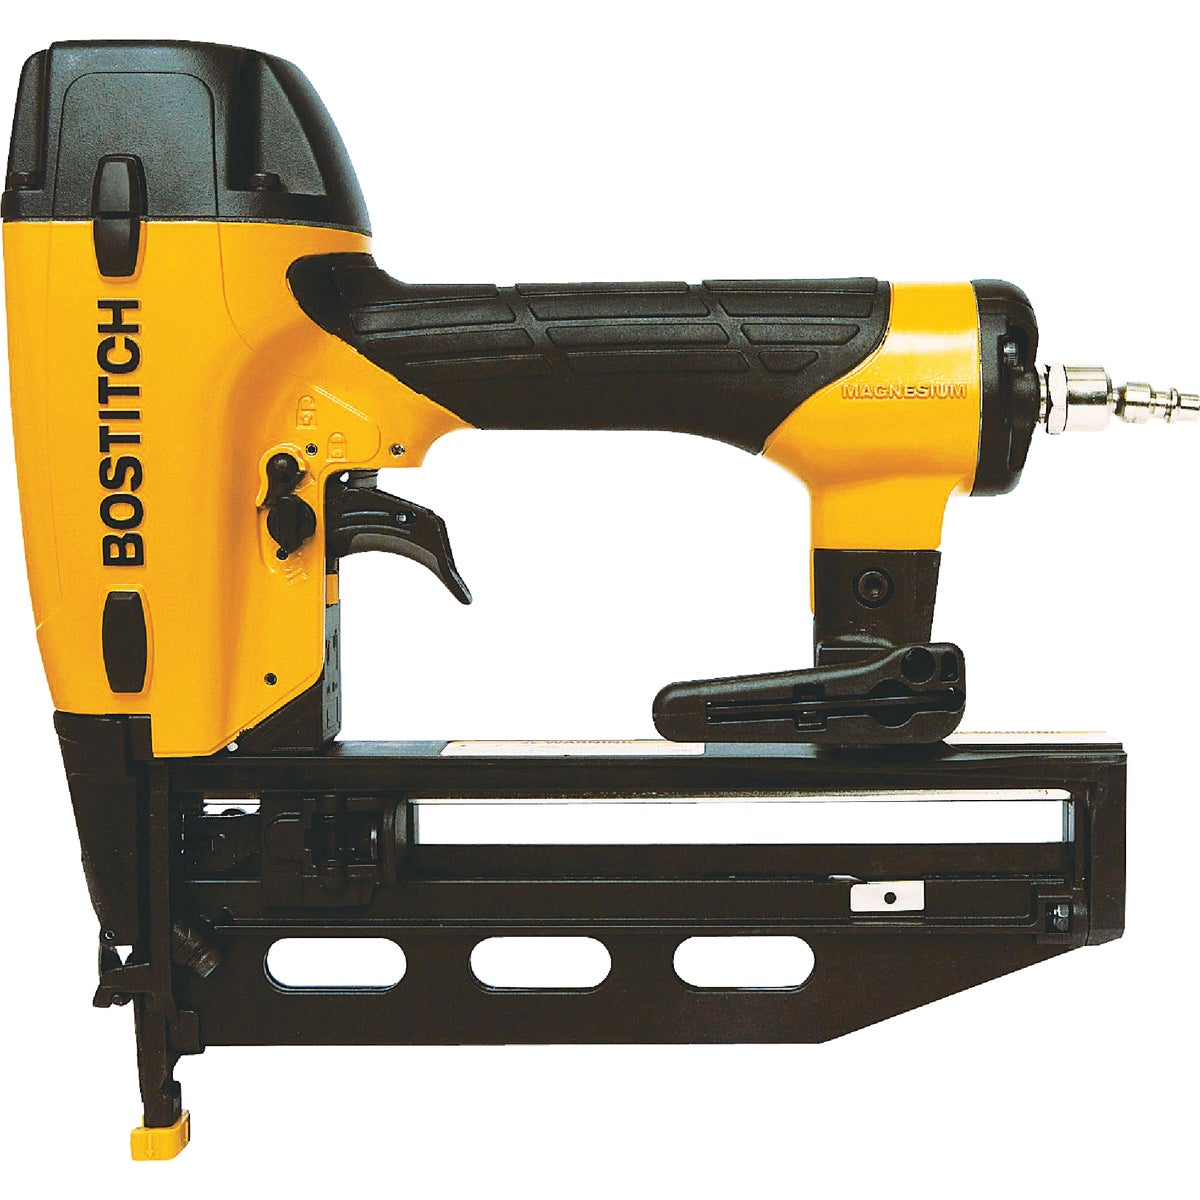 16GA FINISH NAILER KIT - FN1664K by Stanley Bostitch